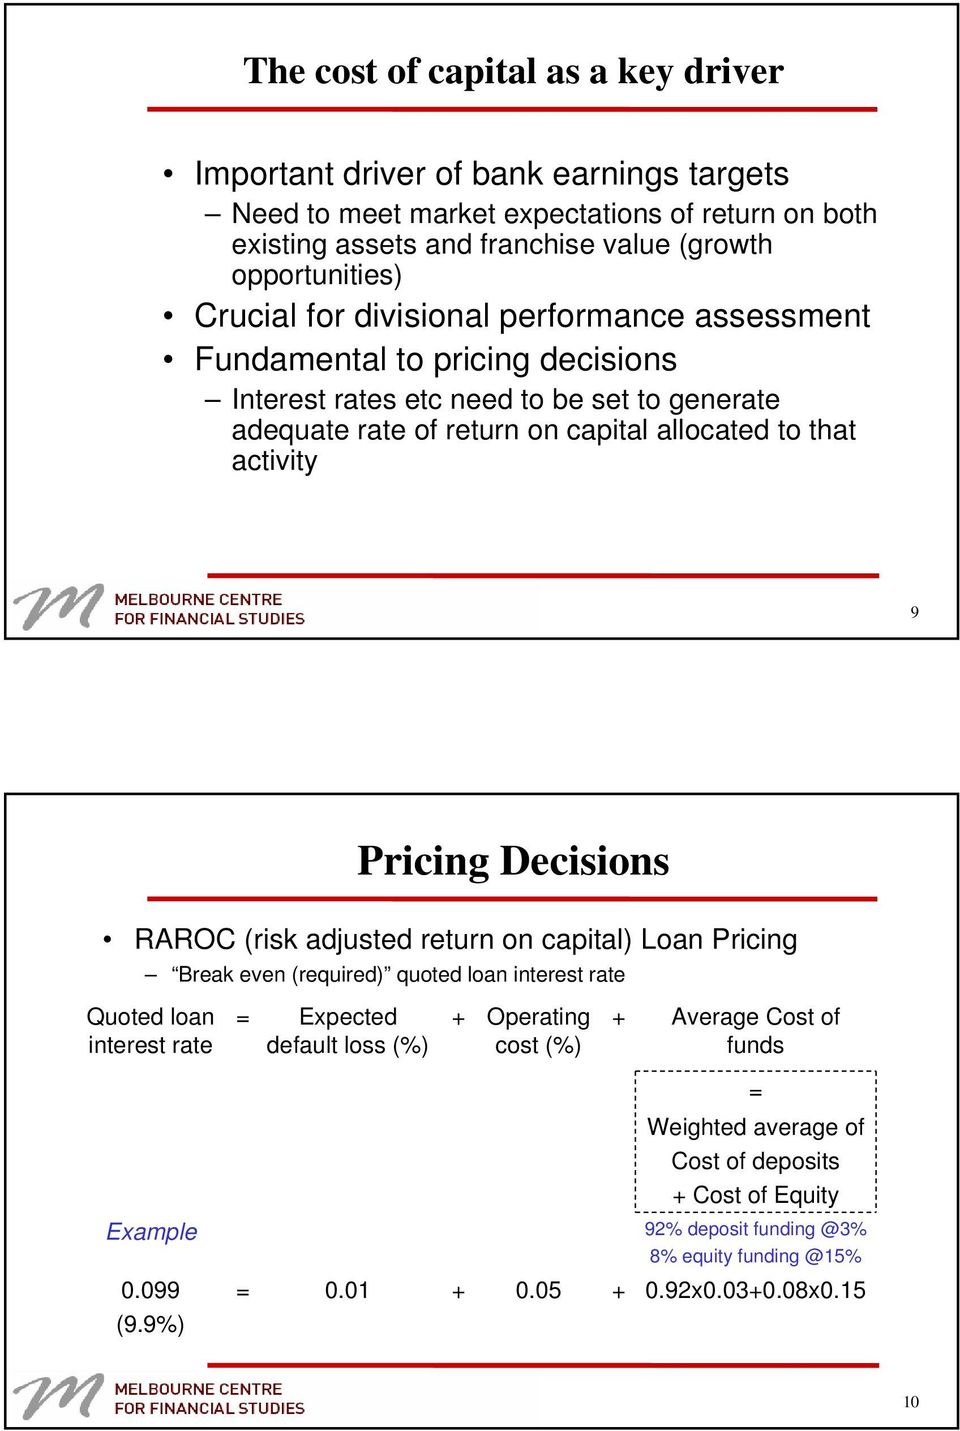 Pricing Decisions RAROC (risk adjusted return on capital) Loan Pricing Break even (required) quoted loan interest rate Quoted loan interest rate = Expected default loss (%) + Operating cost